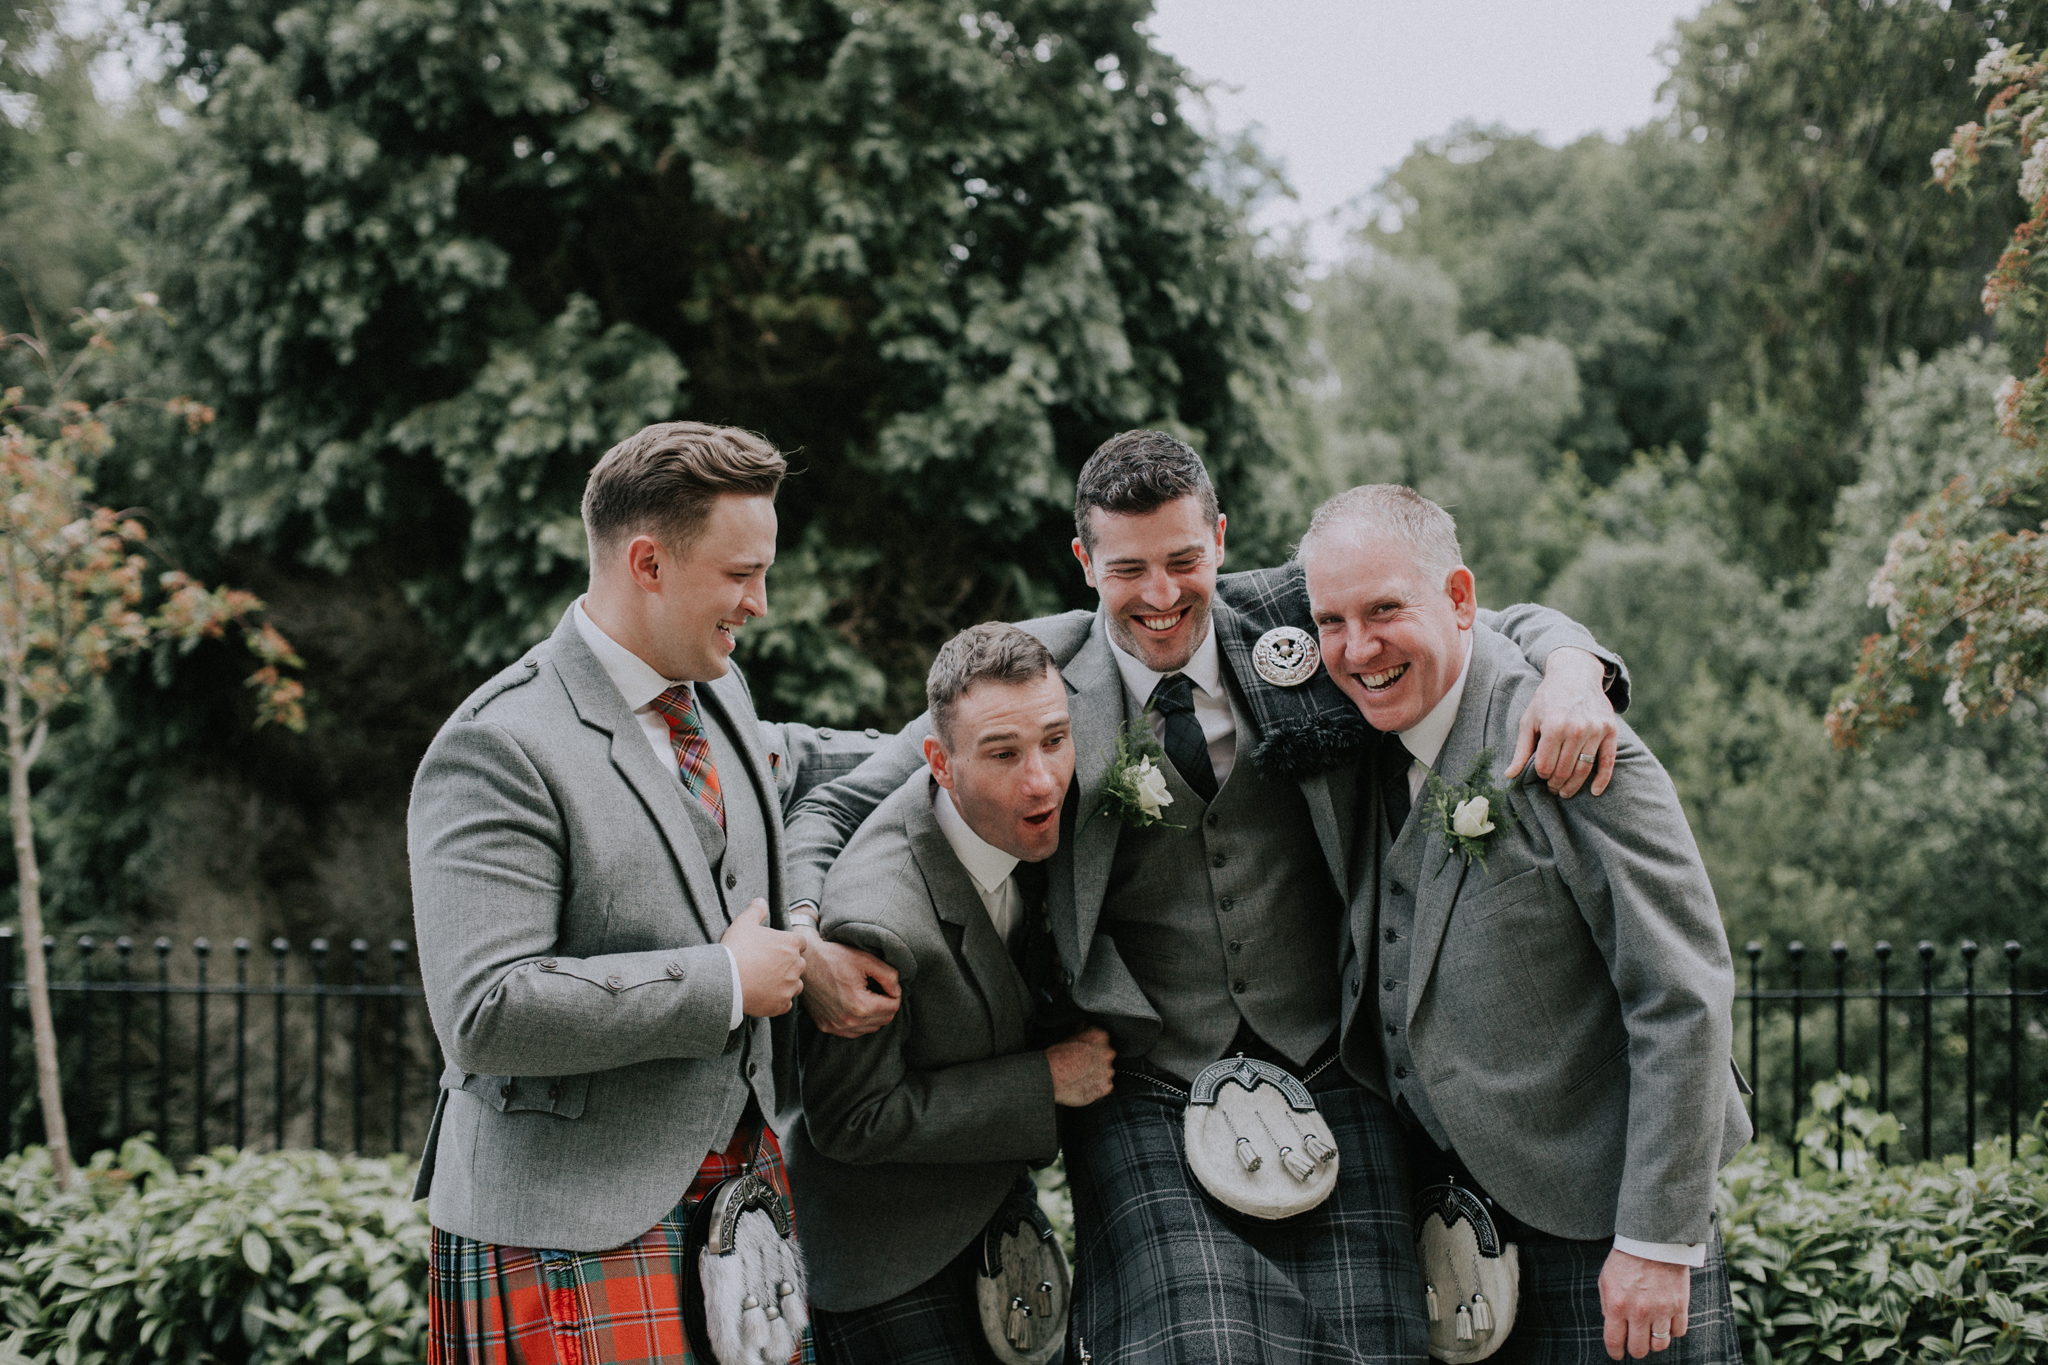 The fun groom party photo